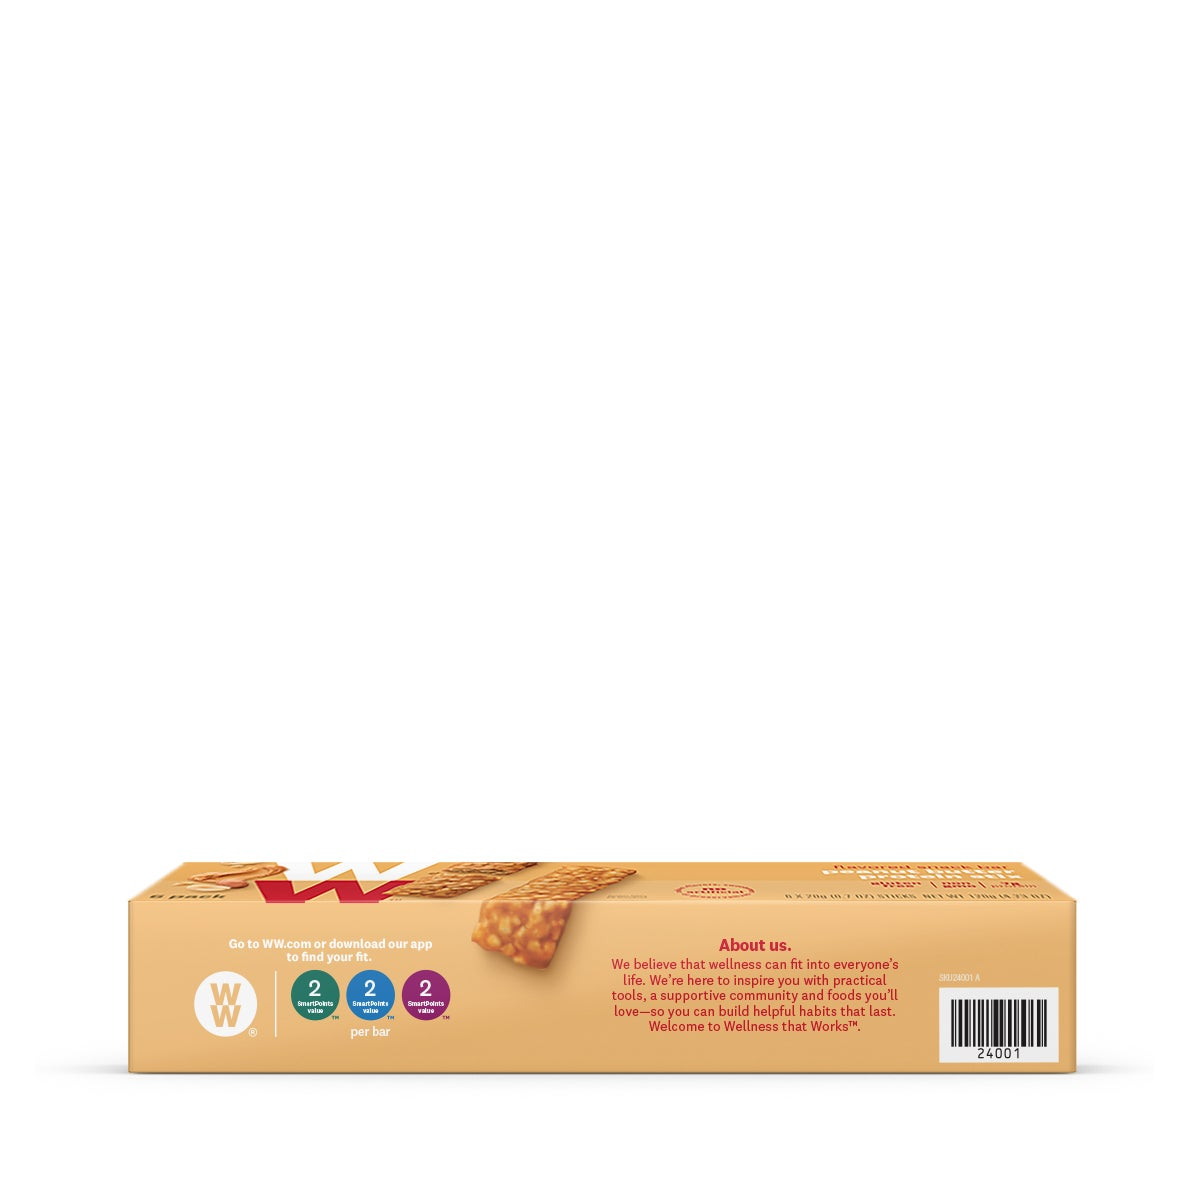 Protein Stix Three Pack - side of box 2